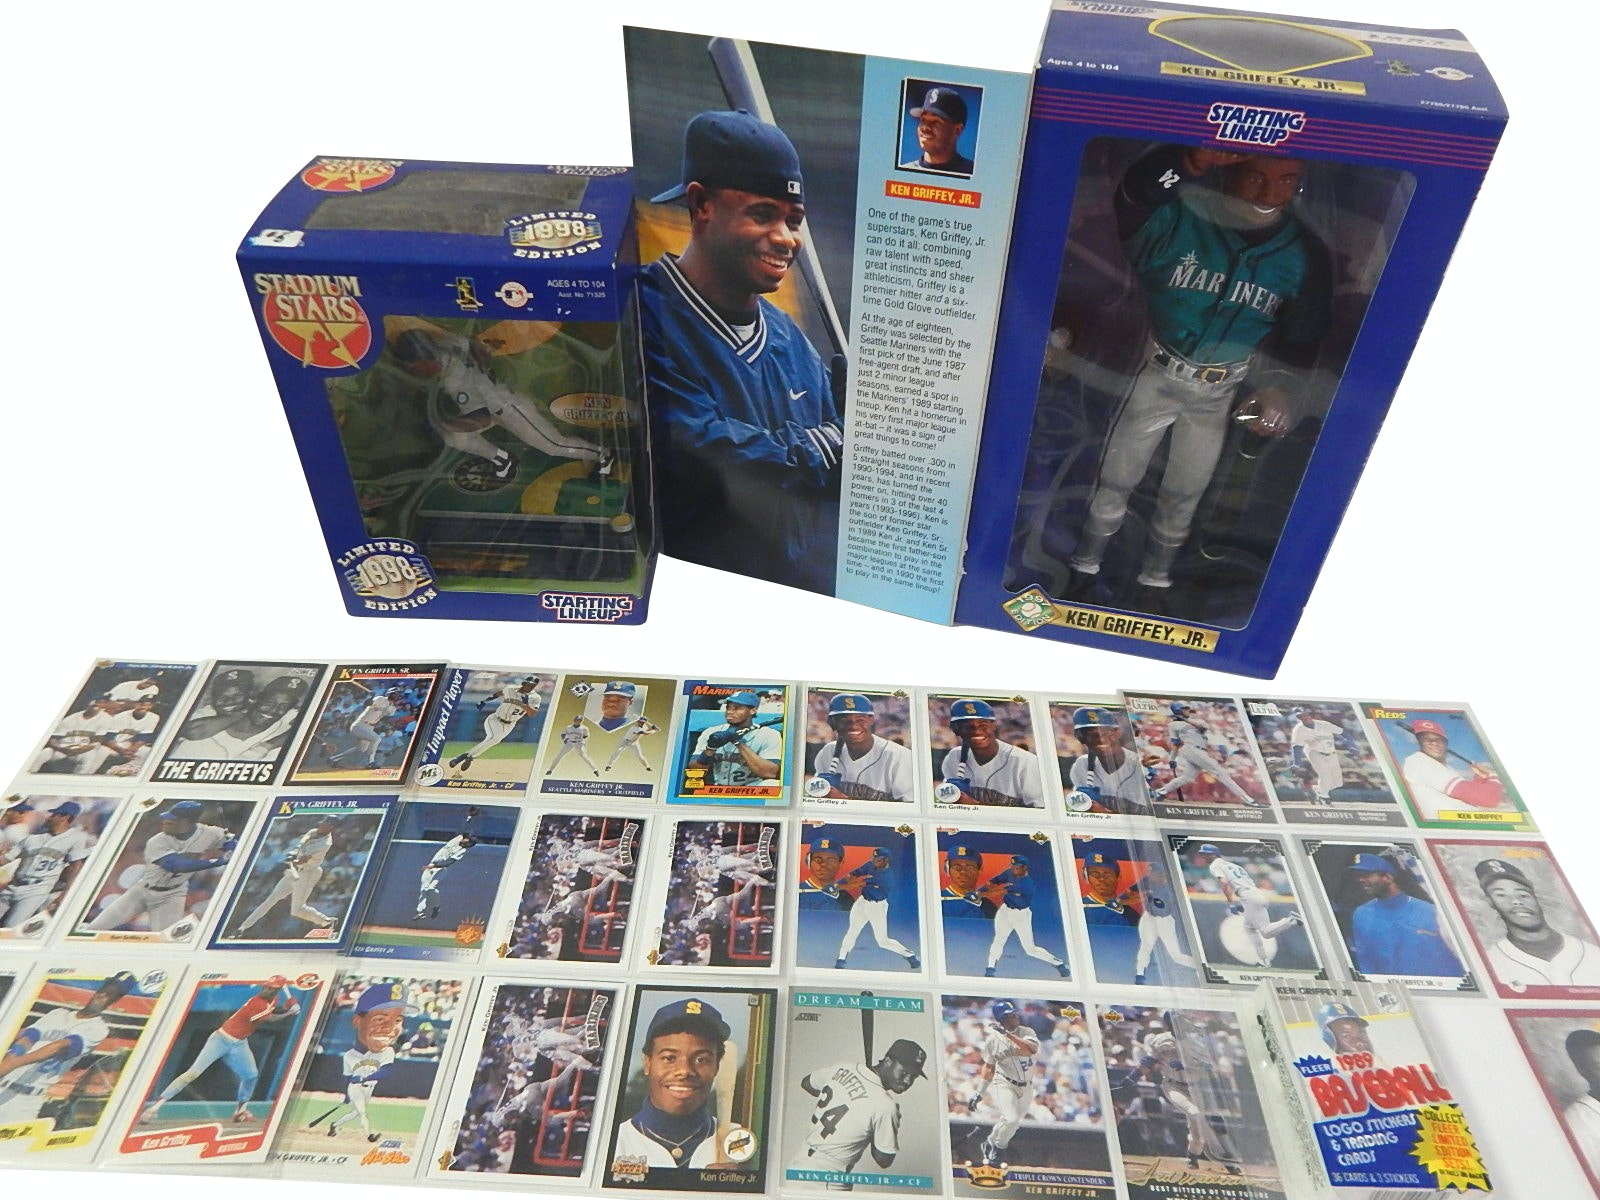 (HOF) Ken Griffey Jr. Baseball Cards and Starting Lineup Action Figures